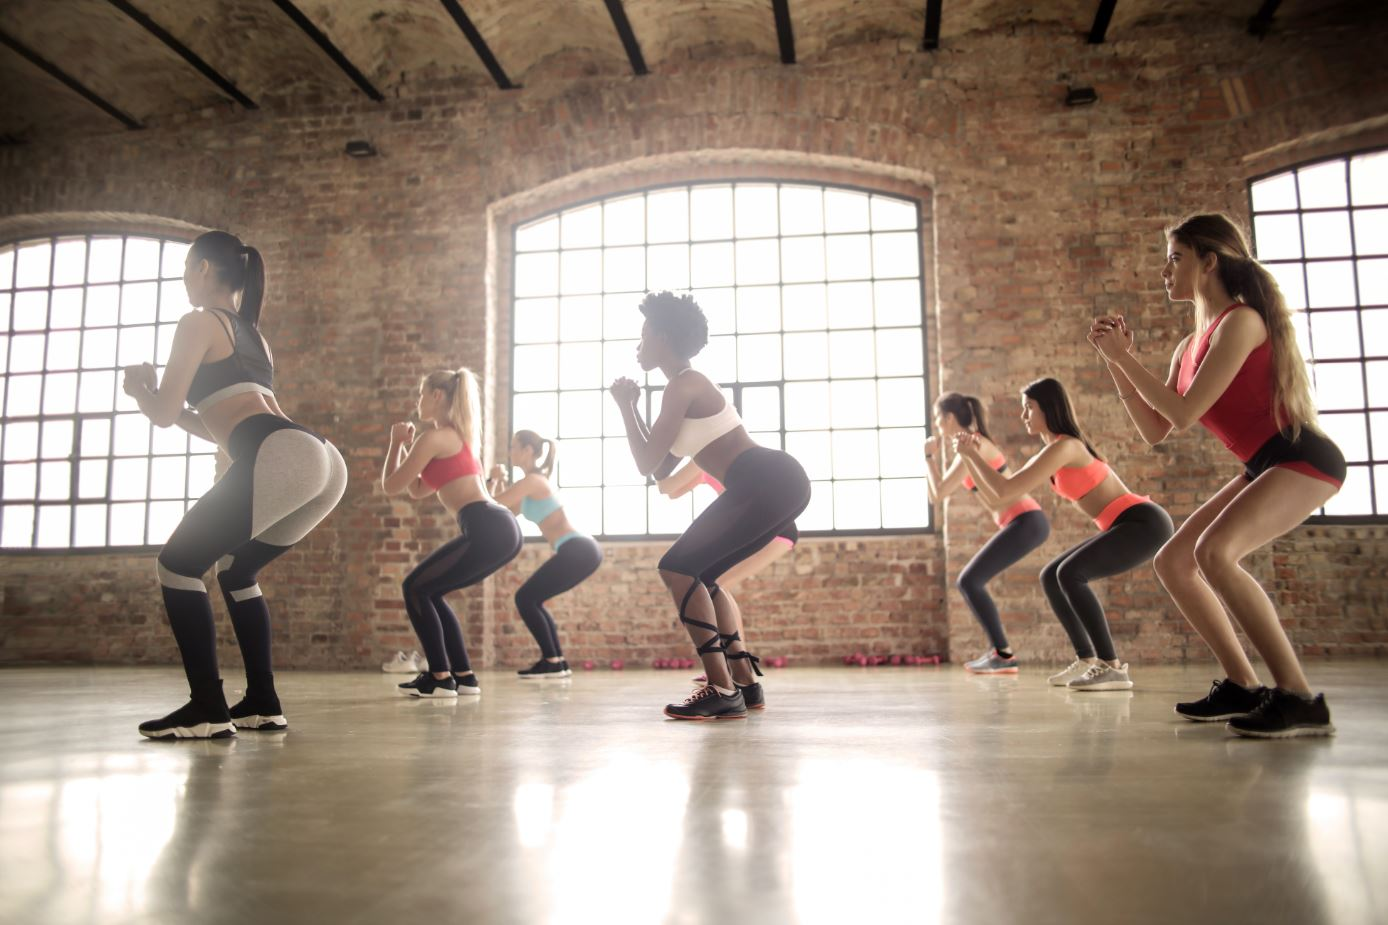 Exercises to Tone Legs and Bum: How to Strengthen Your Lower Body